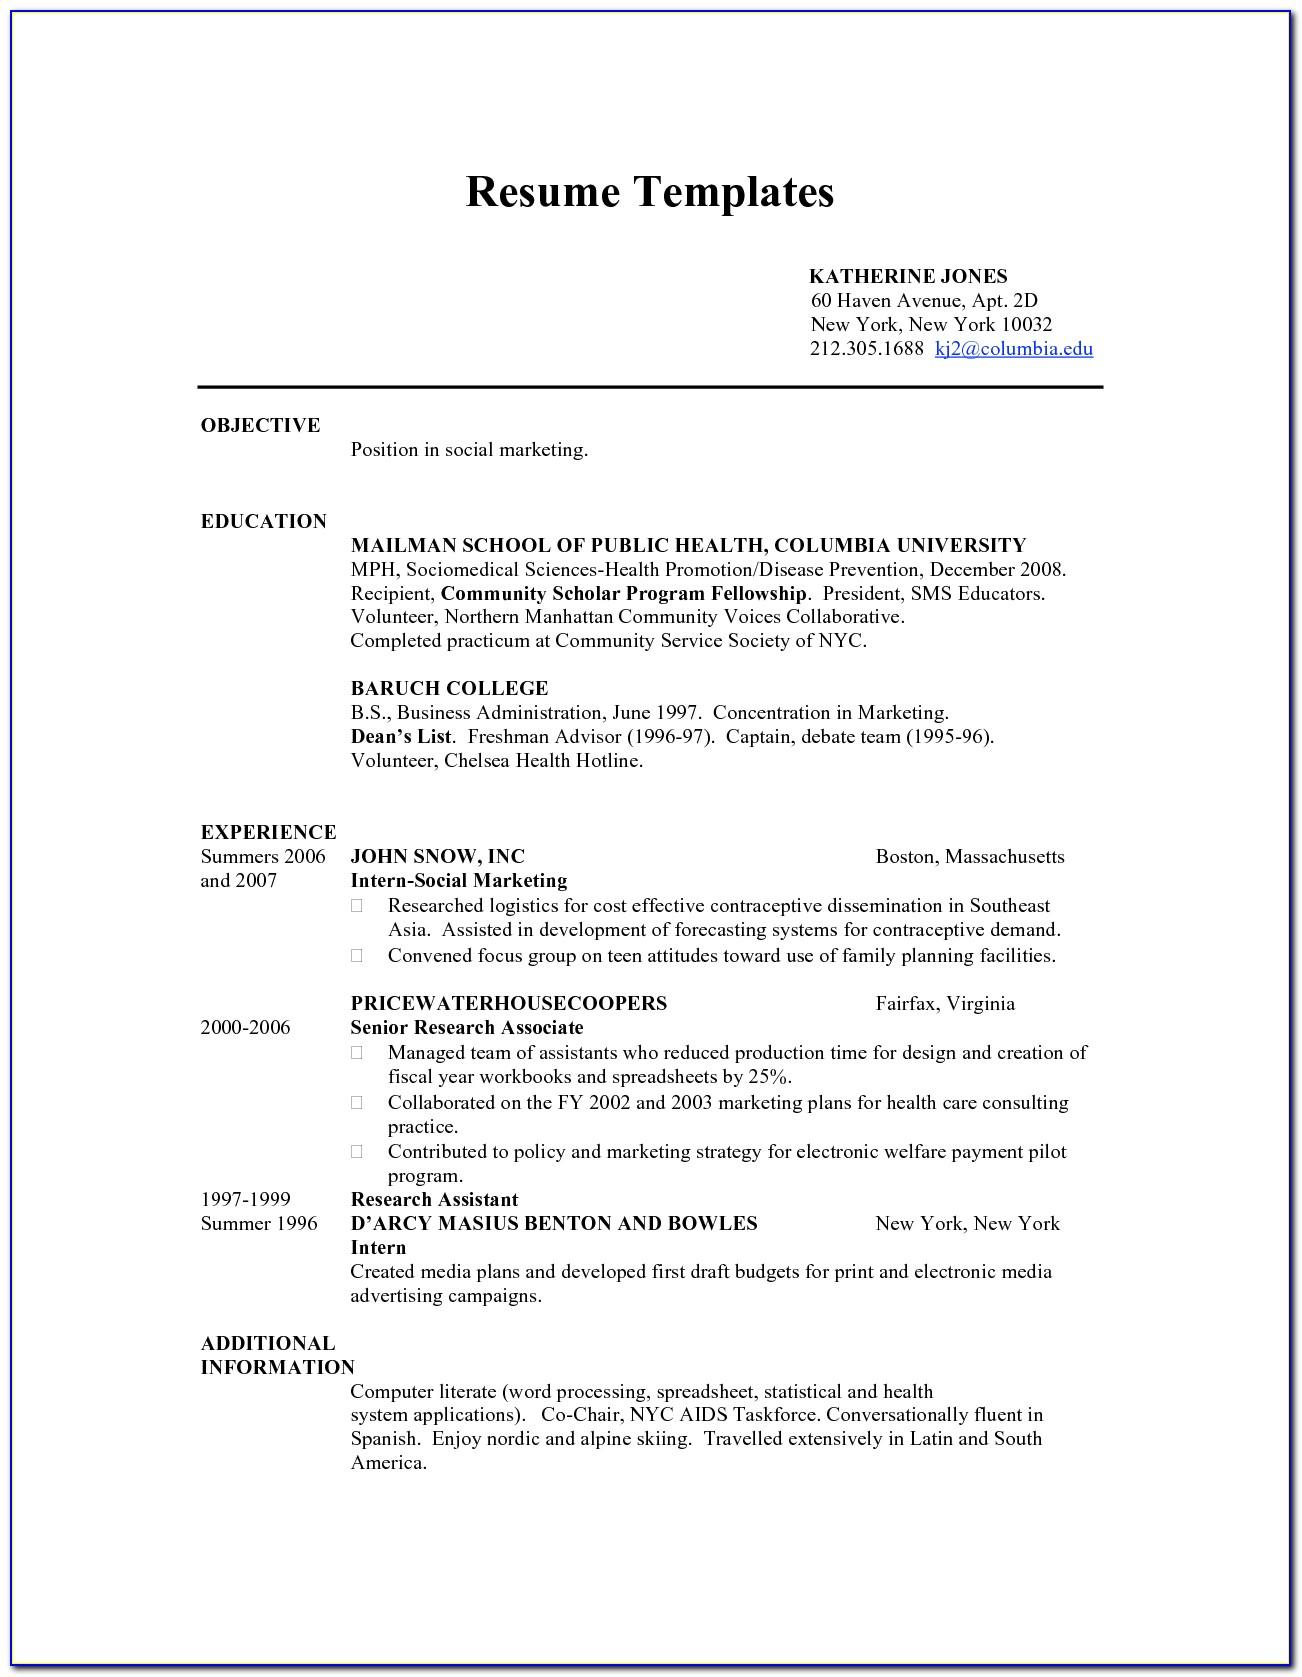 Resume Template For Australian Jobs